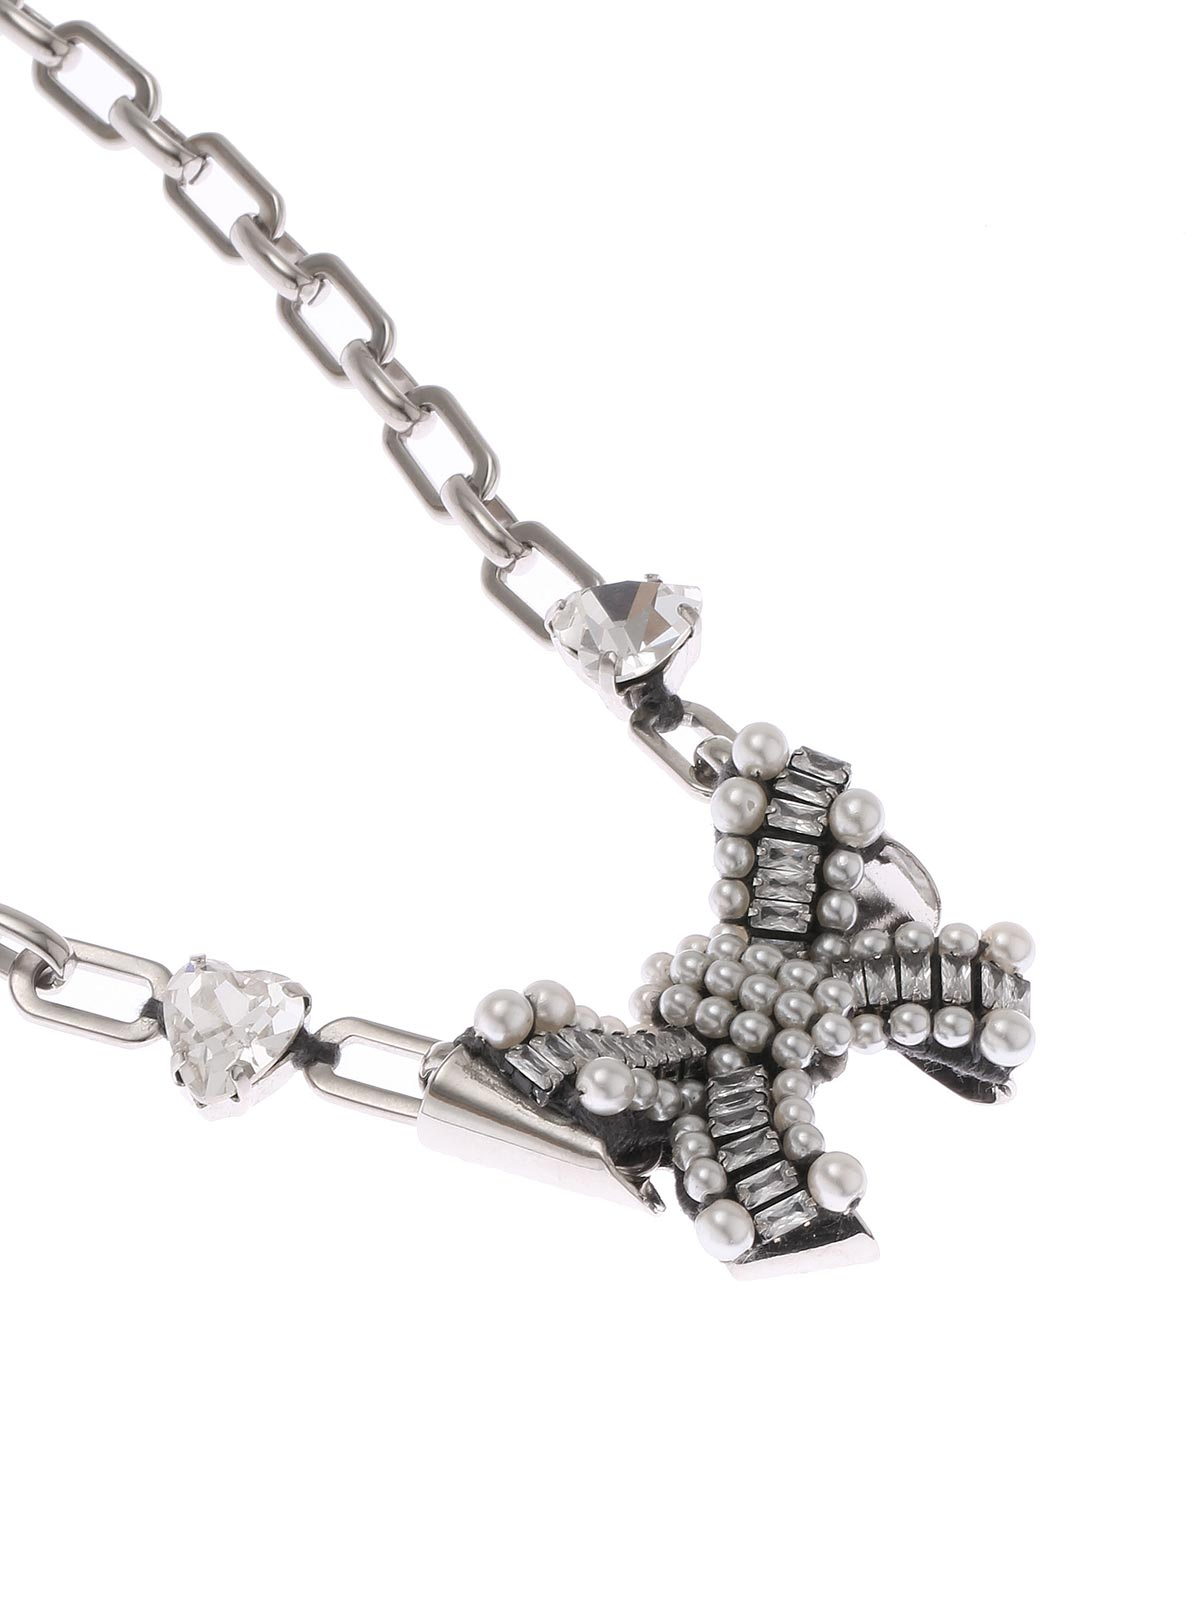 Chain necklace with crystal and beads bow pendant